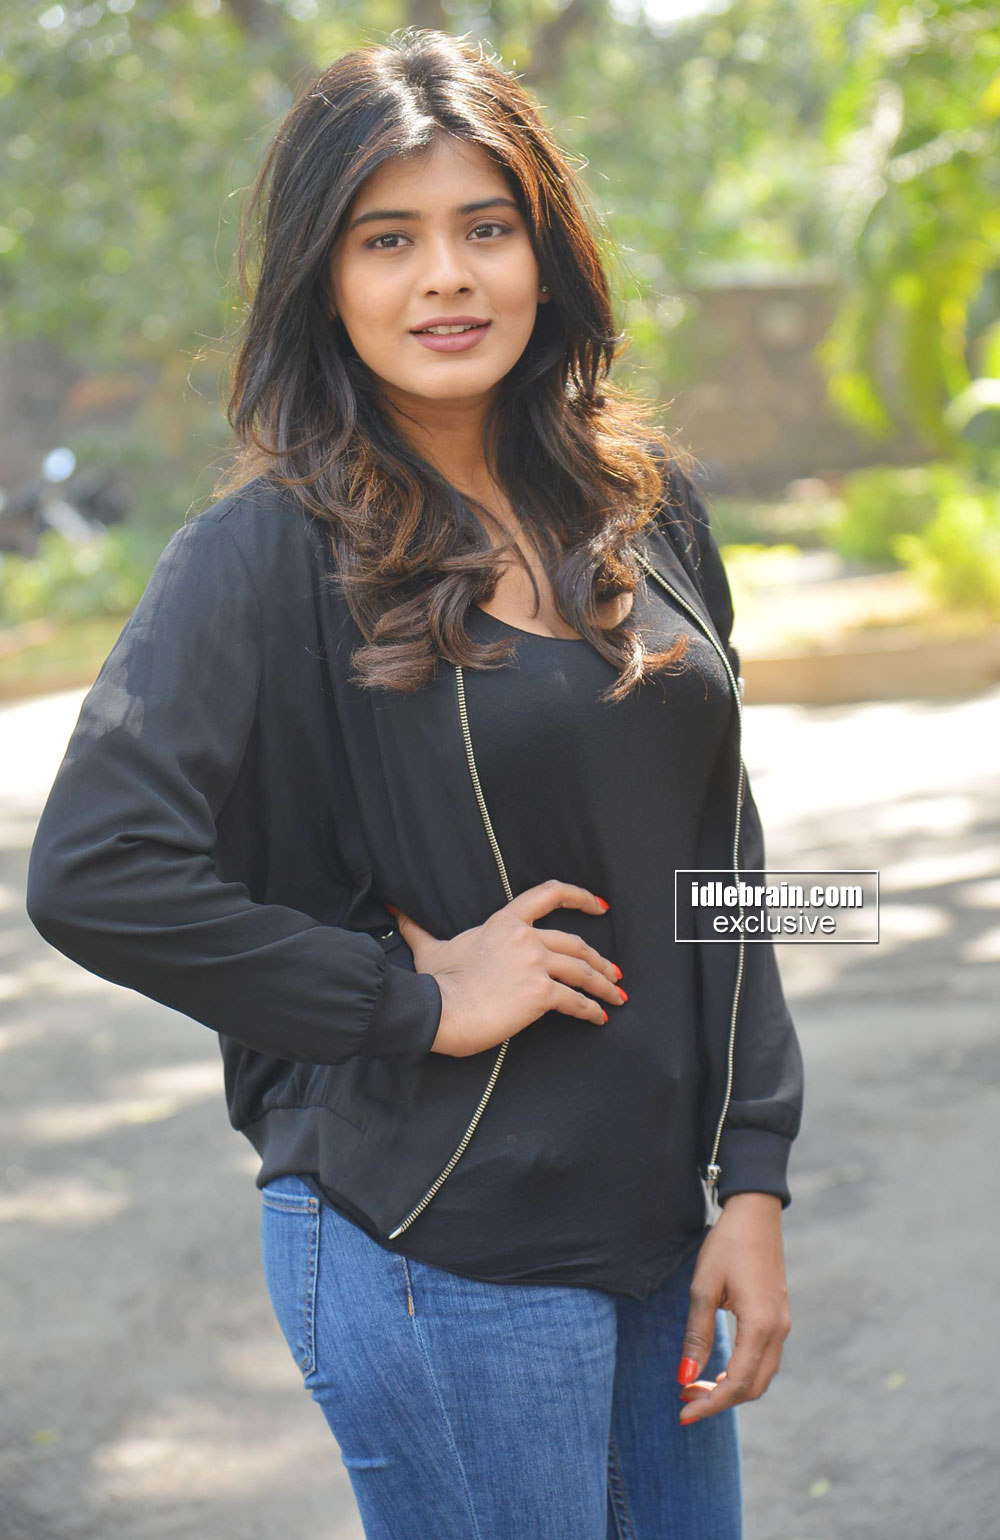 Actress-Hebah-Patel-photo-gallery-http-www-idlebrain-com-movie-photogallery-hebahpatel-index-htm-wallpaper-wp5203824